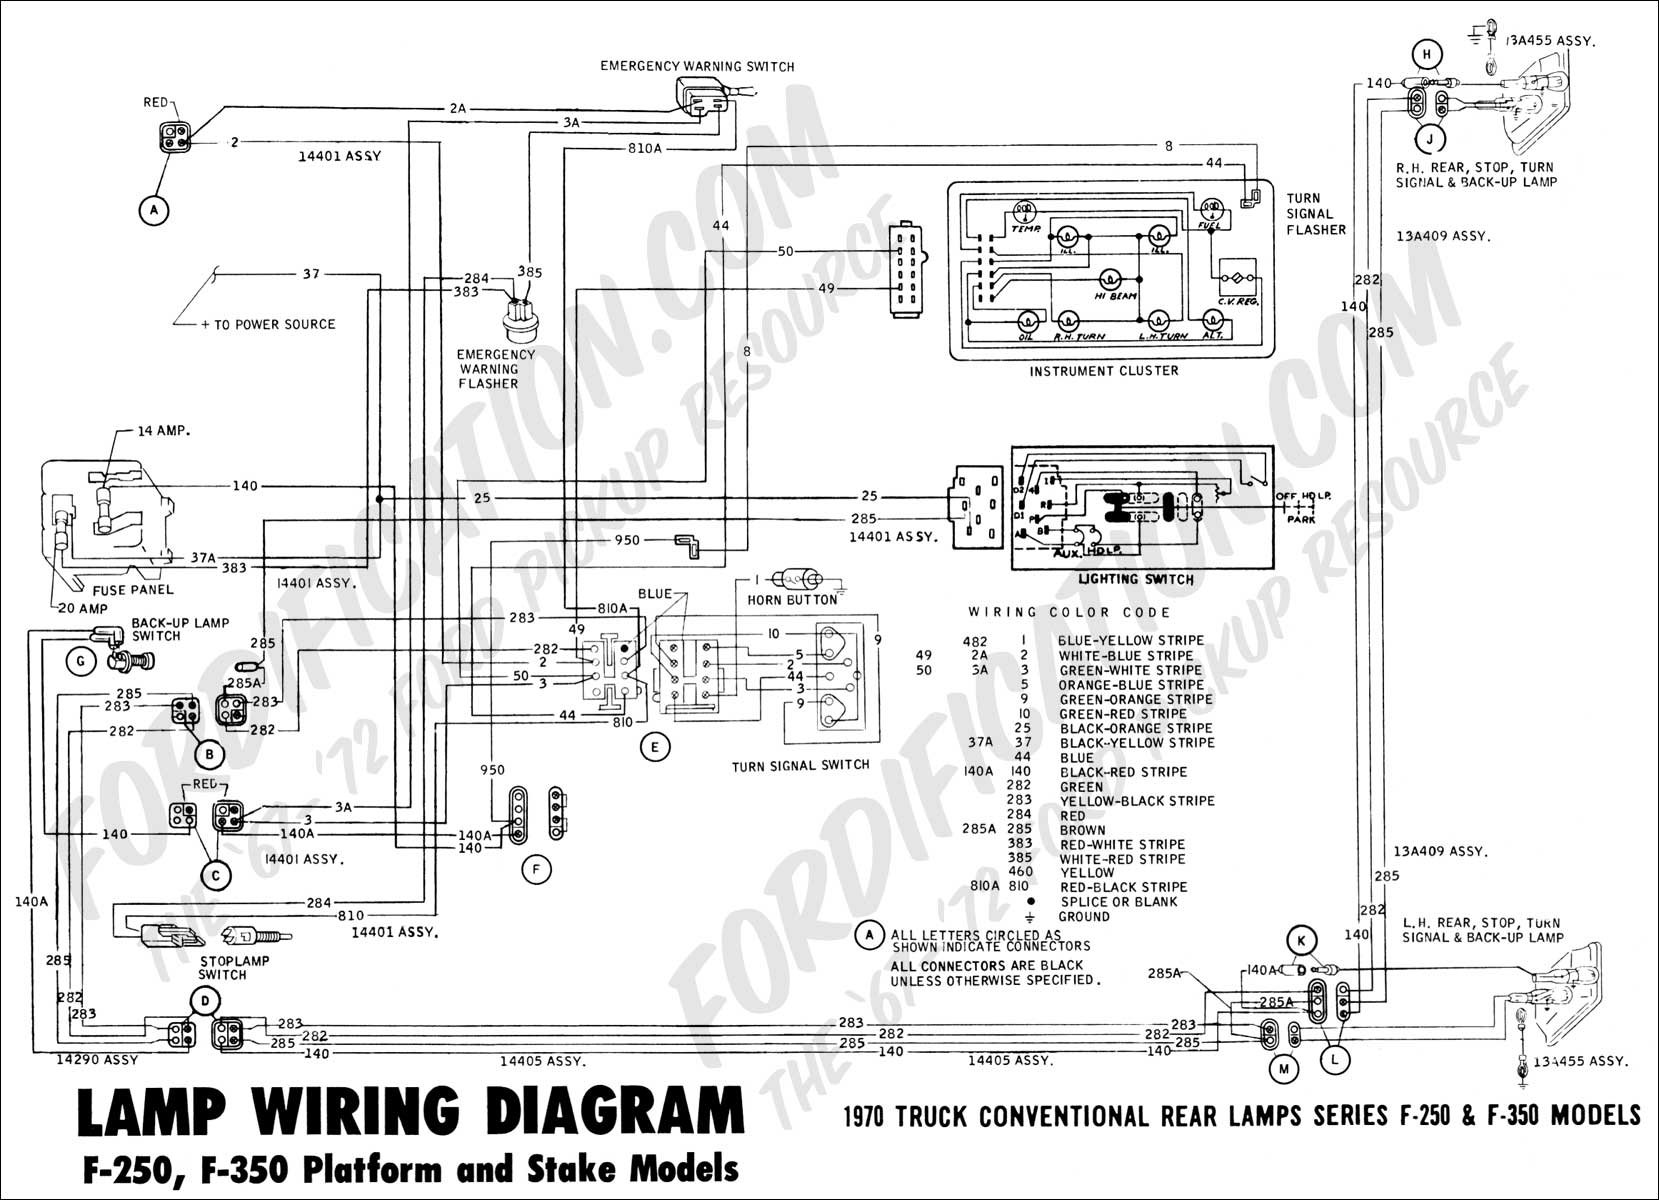 1970 F350 Wiring Diagram Library Ford Alternator Truck Technical Drawings And Schematics Section H 1970s F100